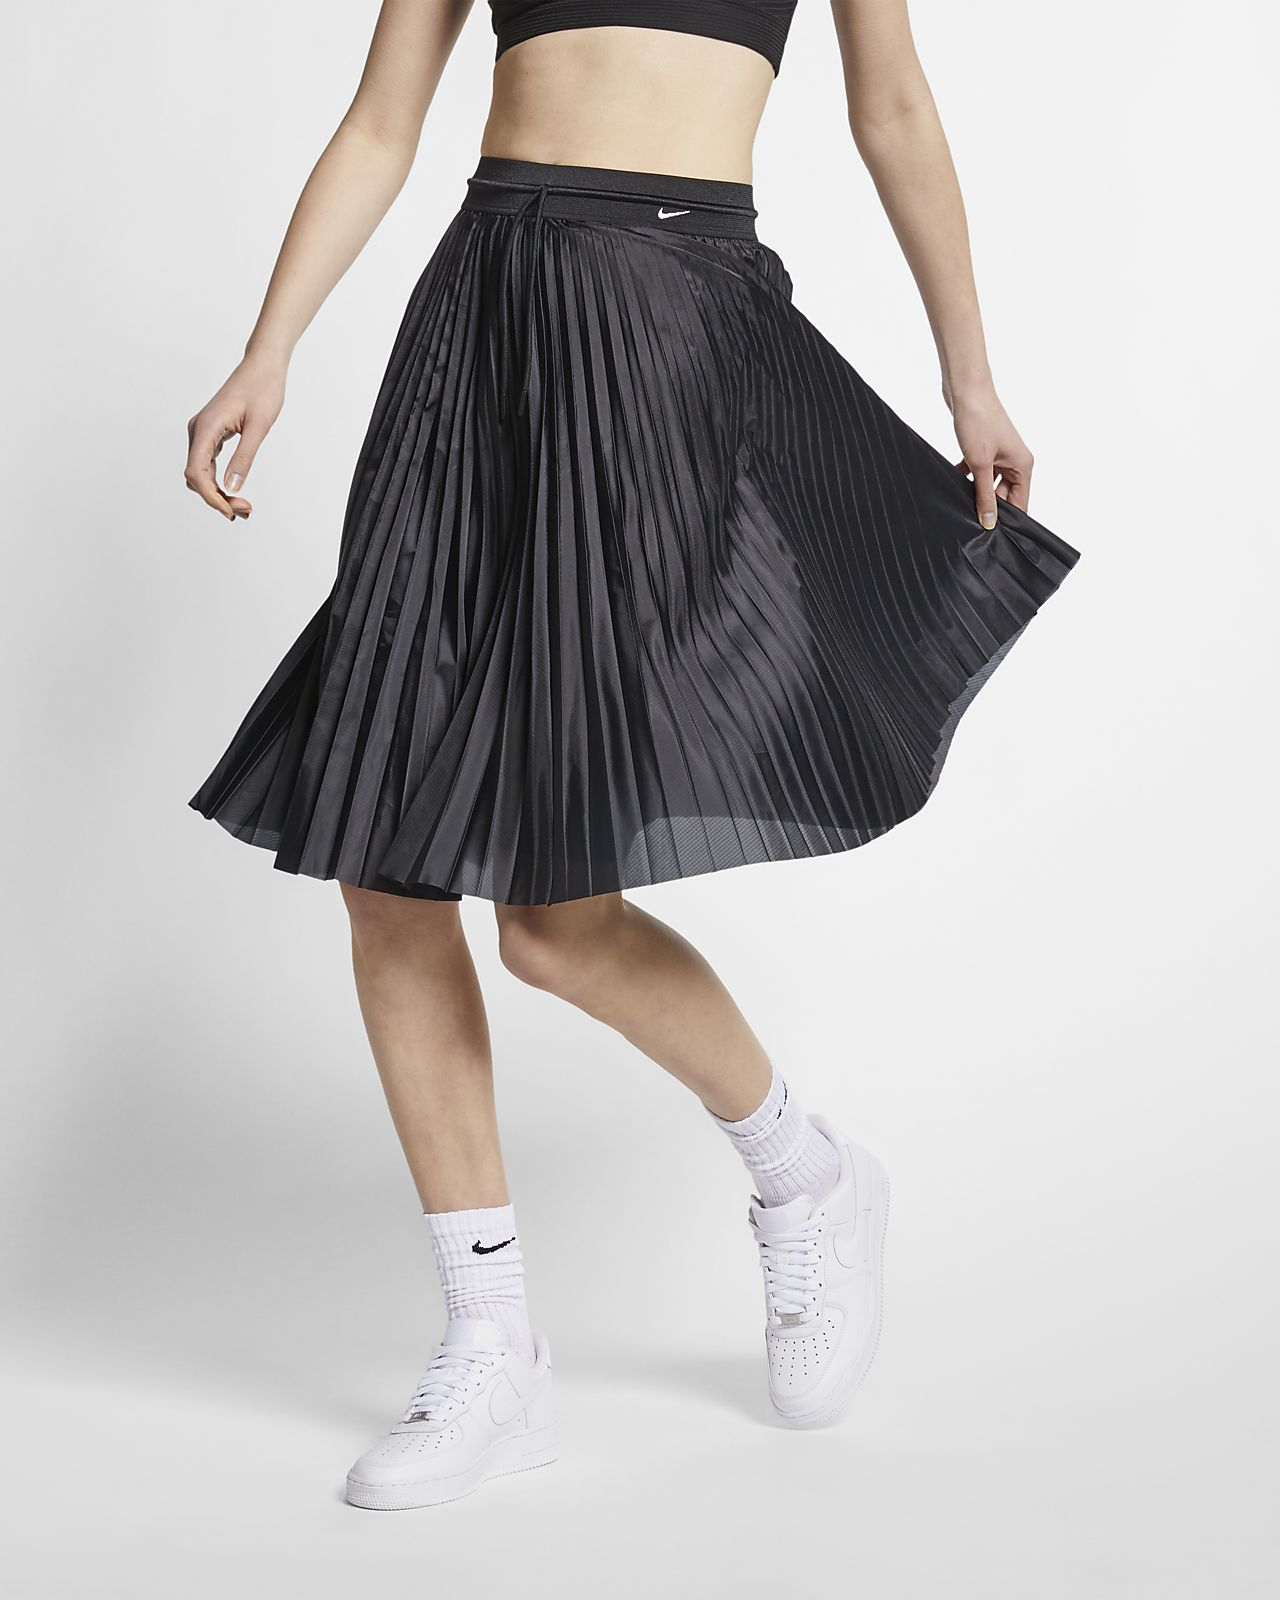 NikeLab Collection Women's Skirt